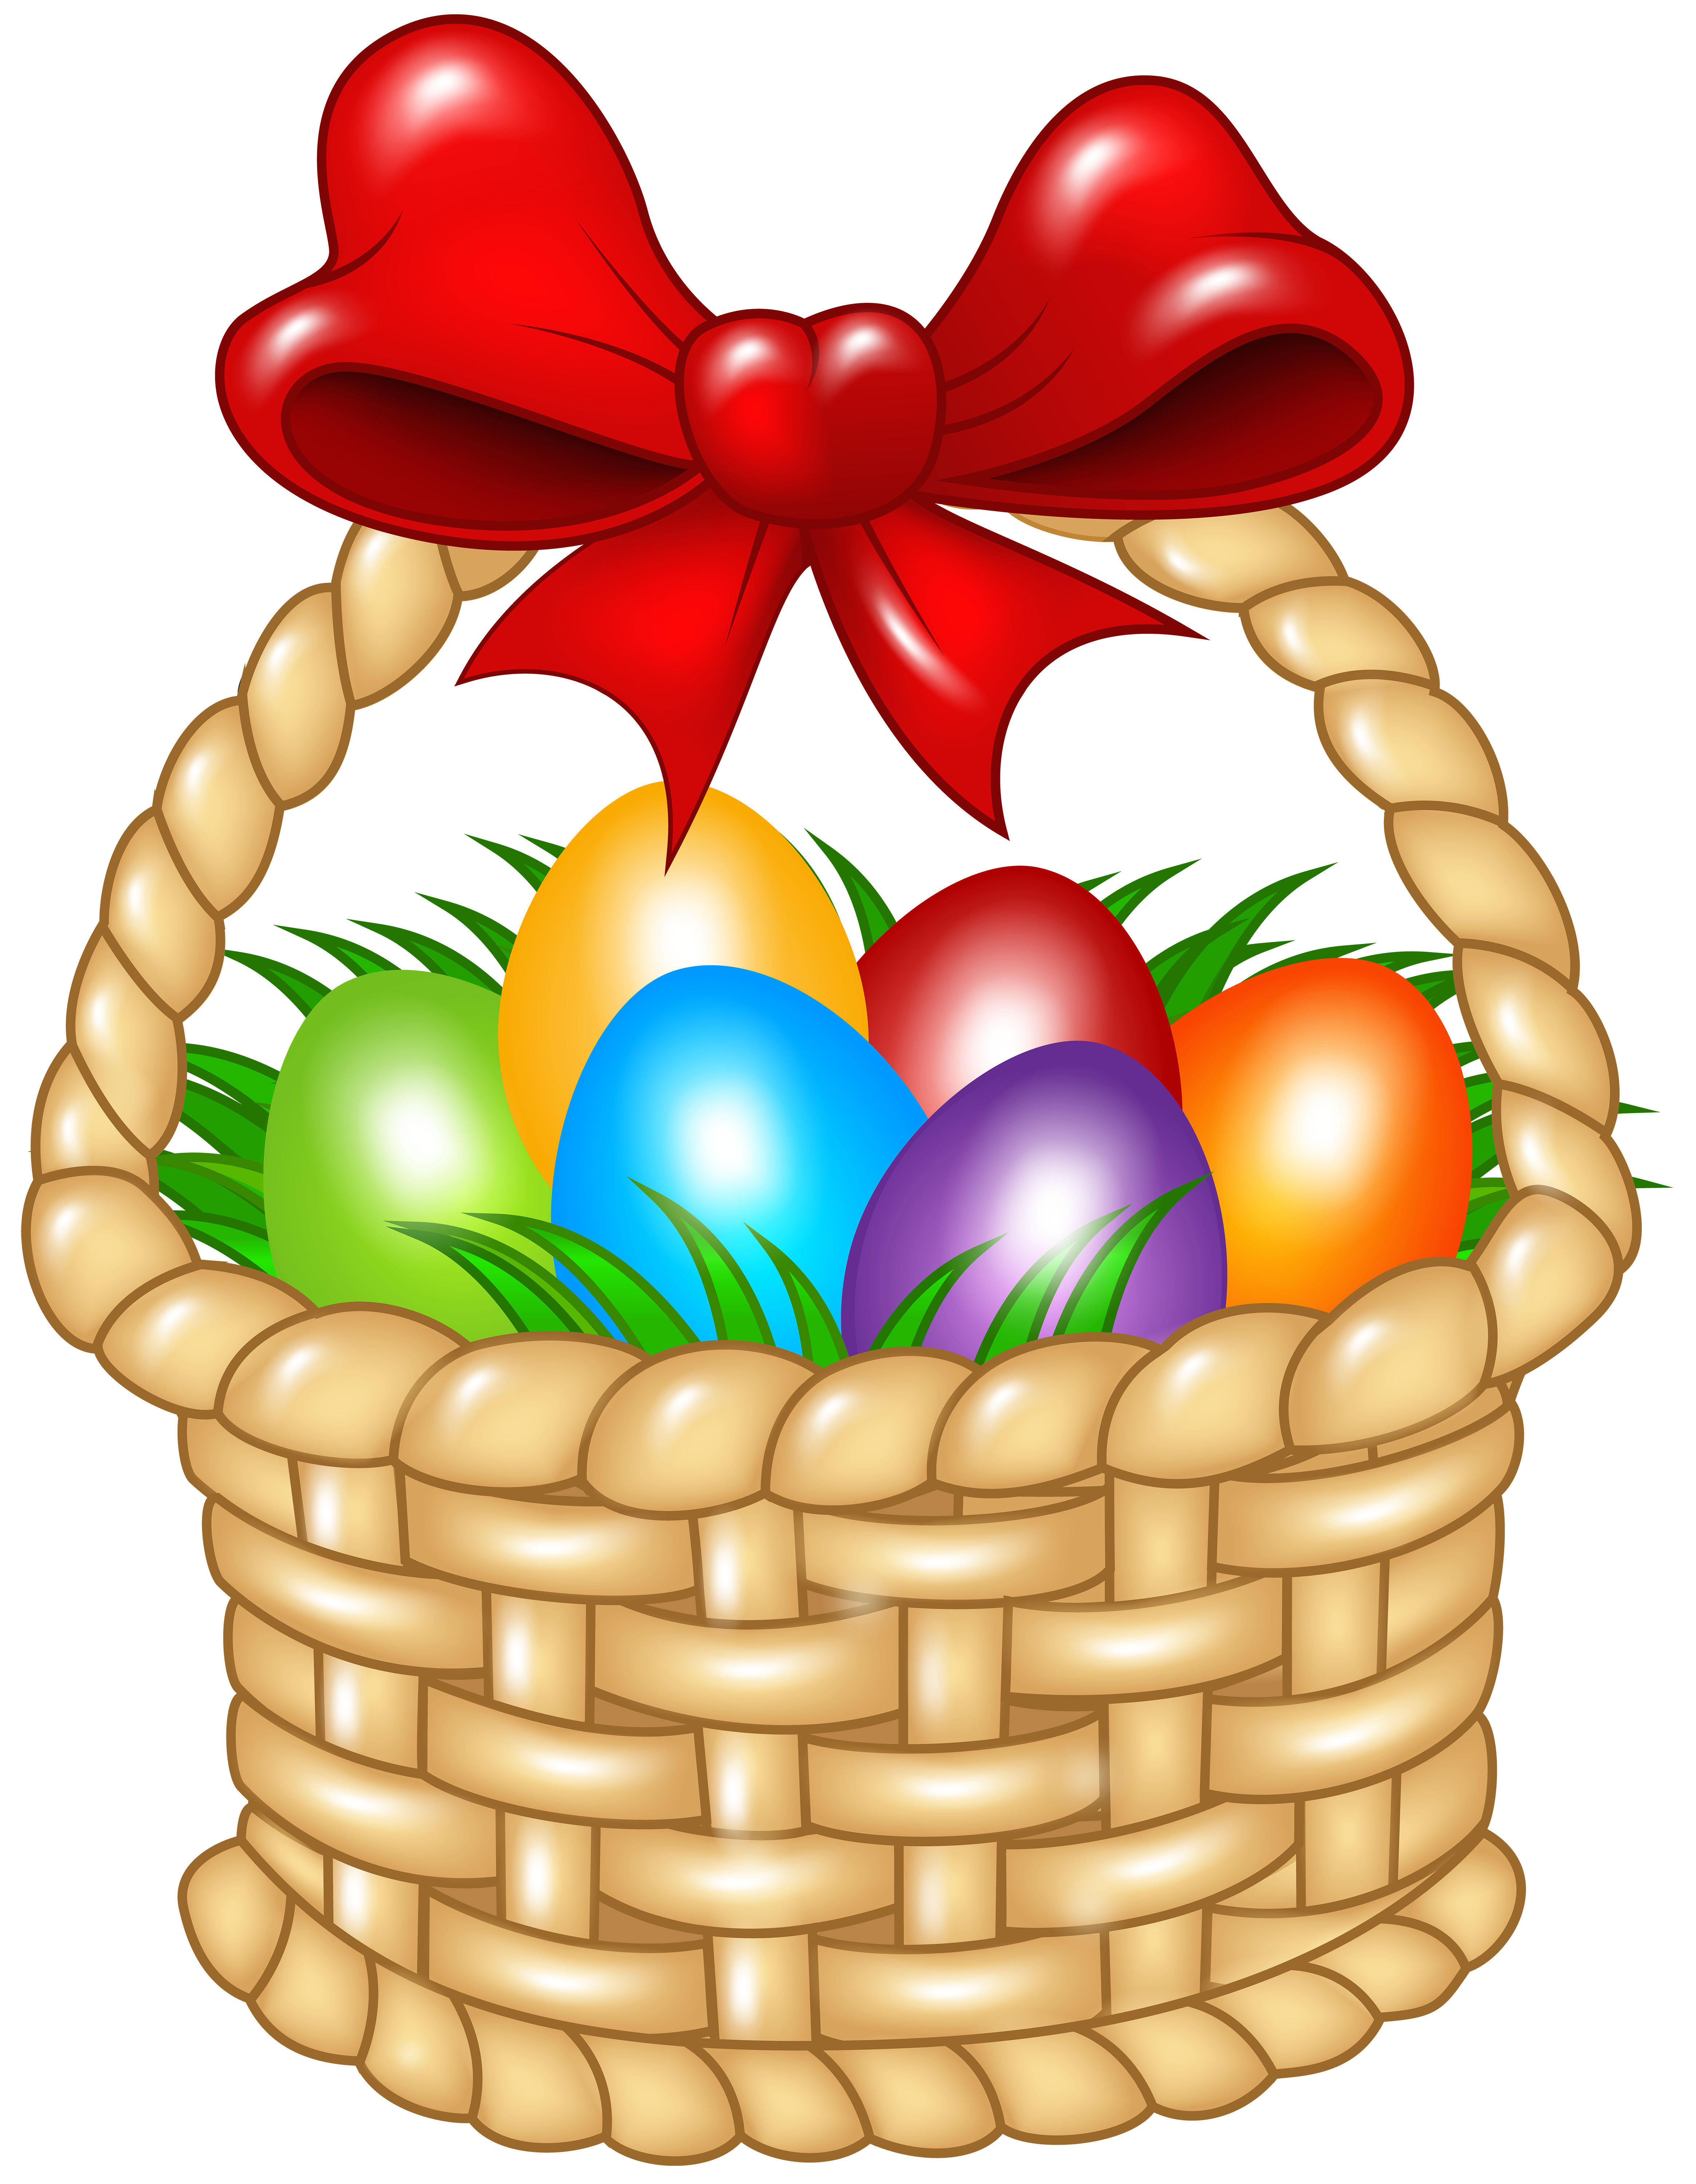 Clipart of easter basket image freeuse library Easter Basket Transparent PNG Clip Art Image image freeuse library